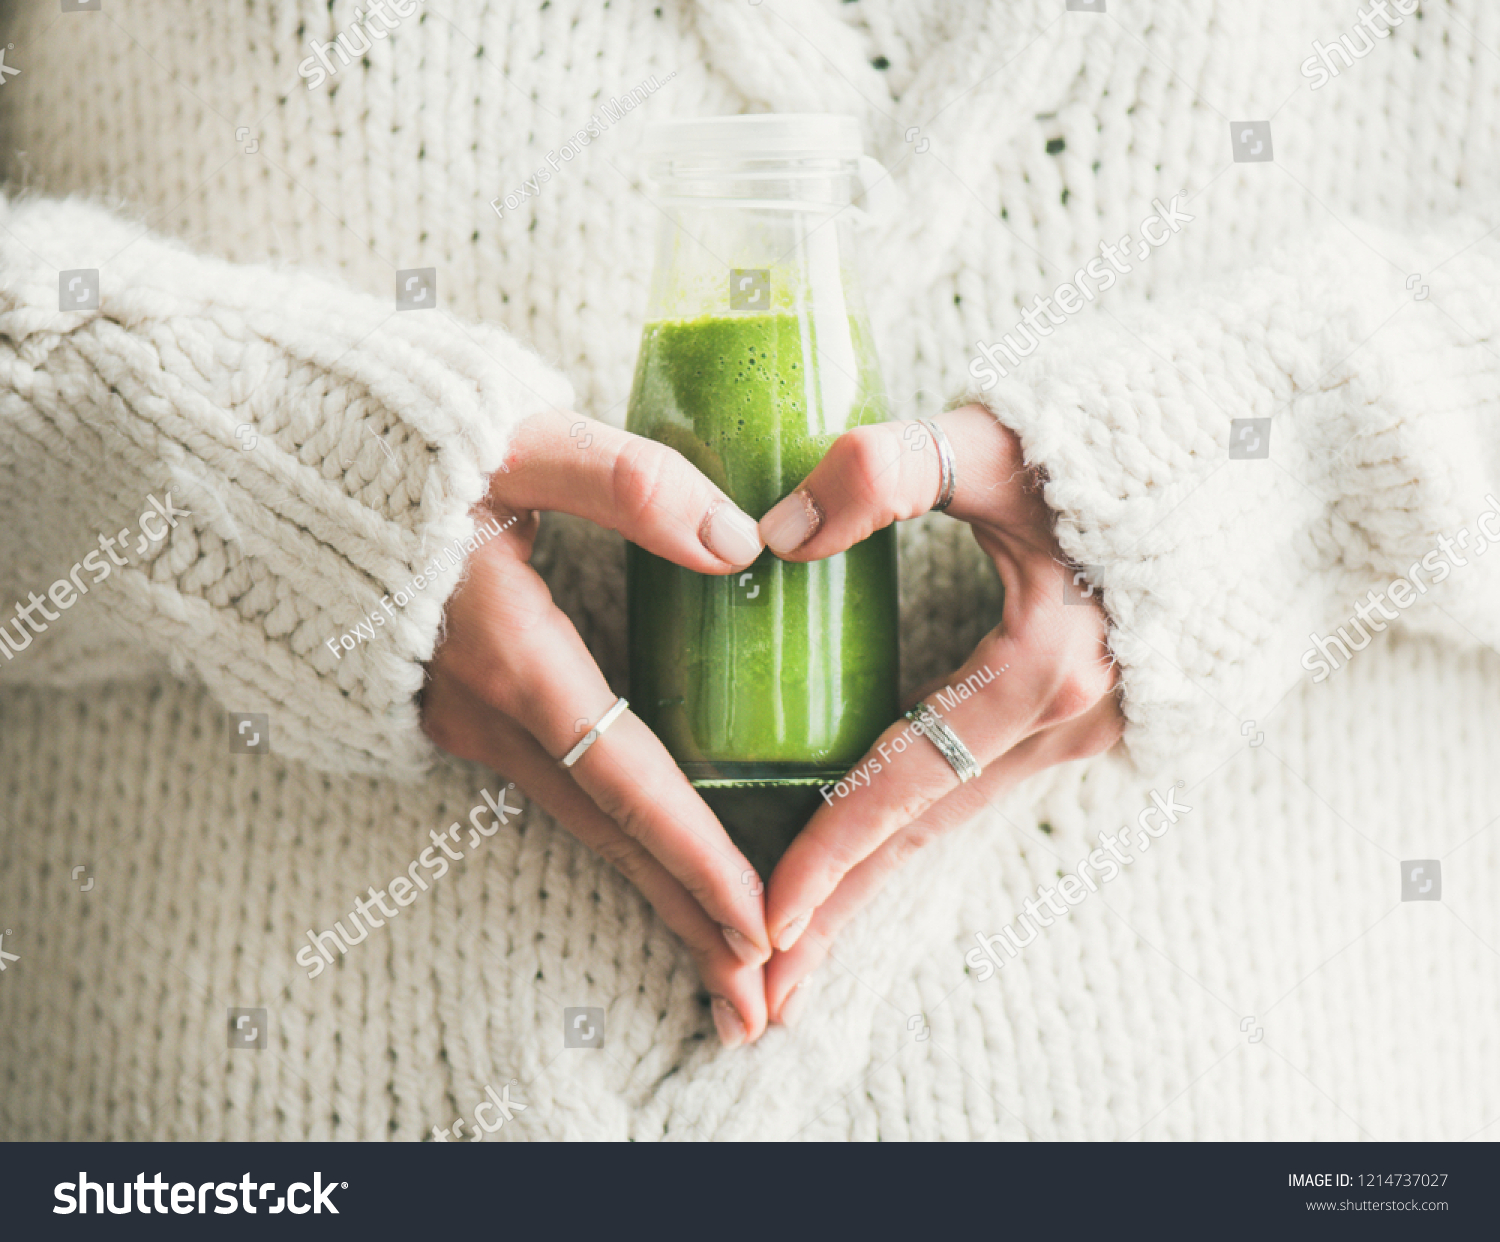 Winter seasonal smoothie drink detox. Female in woolen sweater holding bottle of green smoothie or juice making heart shape with her hands. Clean eating, weight loss, healthy dieting food concept #1214737027